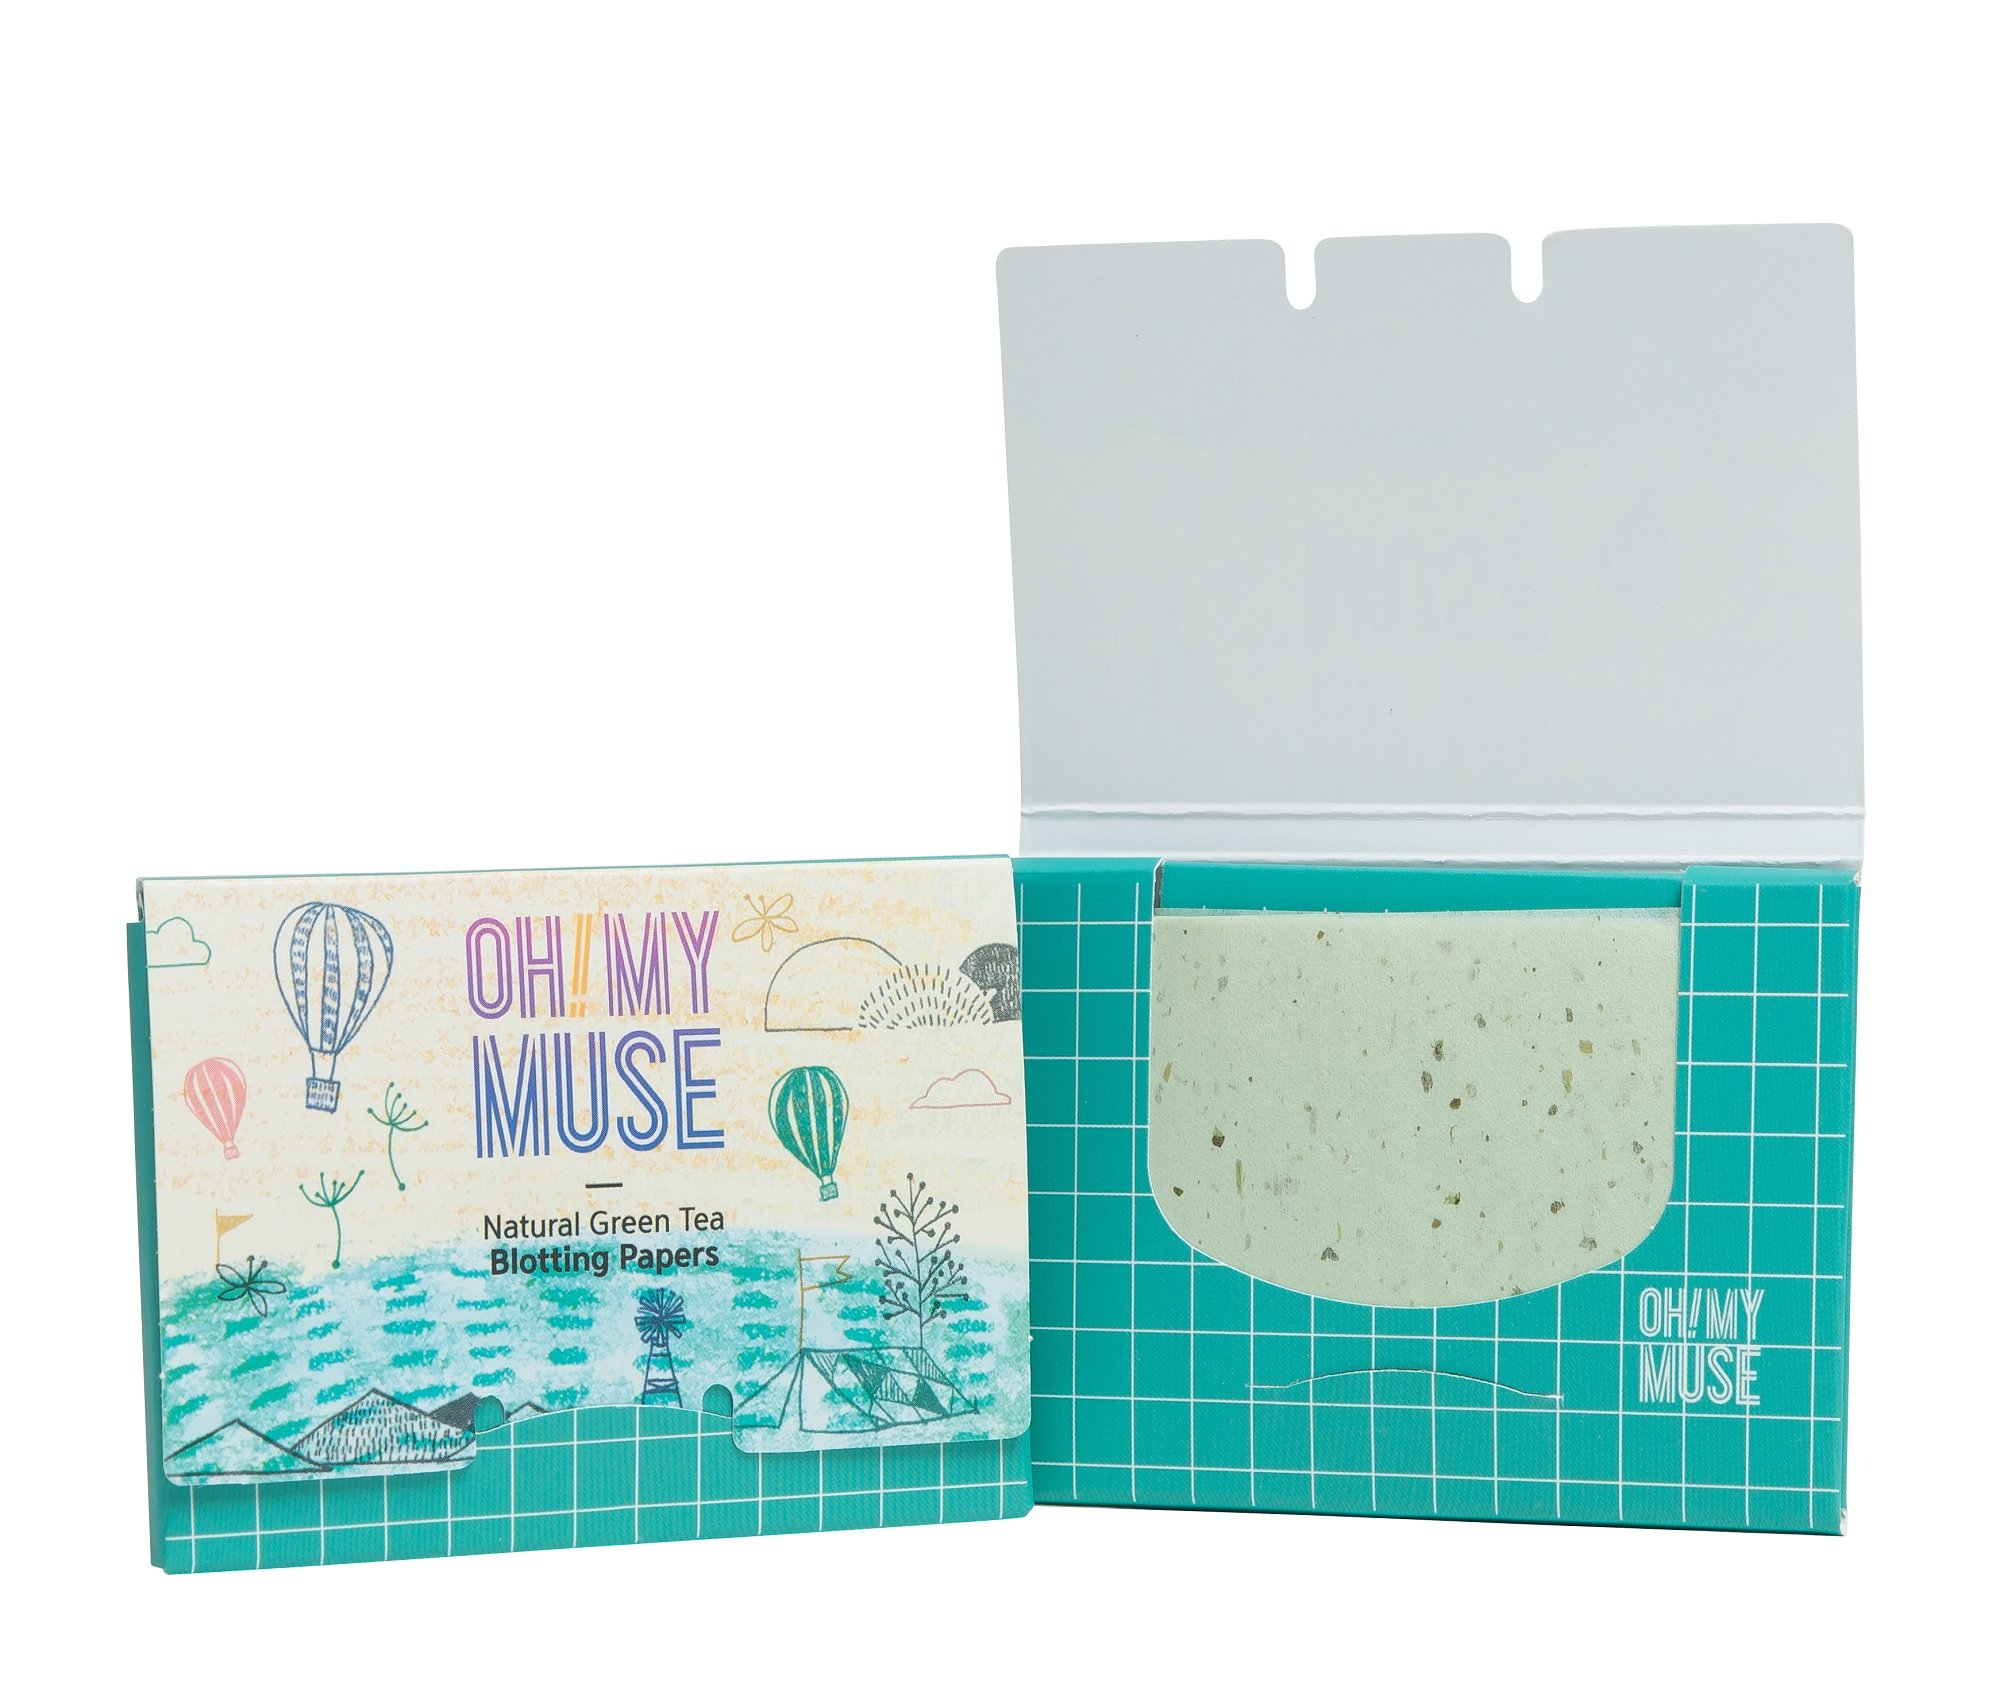 [Oh!My Muse] Natural Green Tea Oil Absorbing Sheets, Blotting Paper, 50 count (10 Packs) by Oh!My Muse (Image #2)